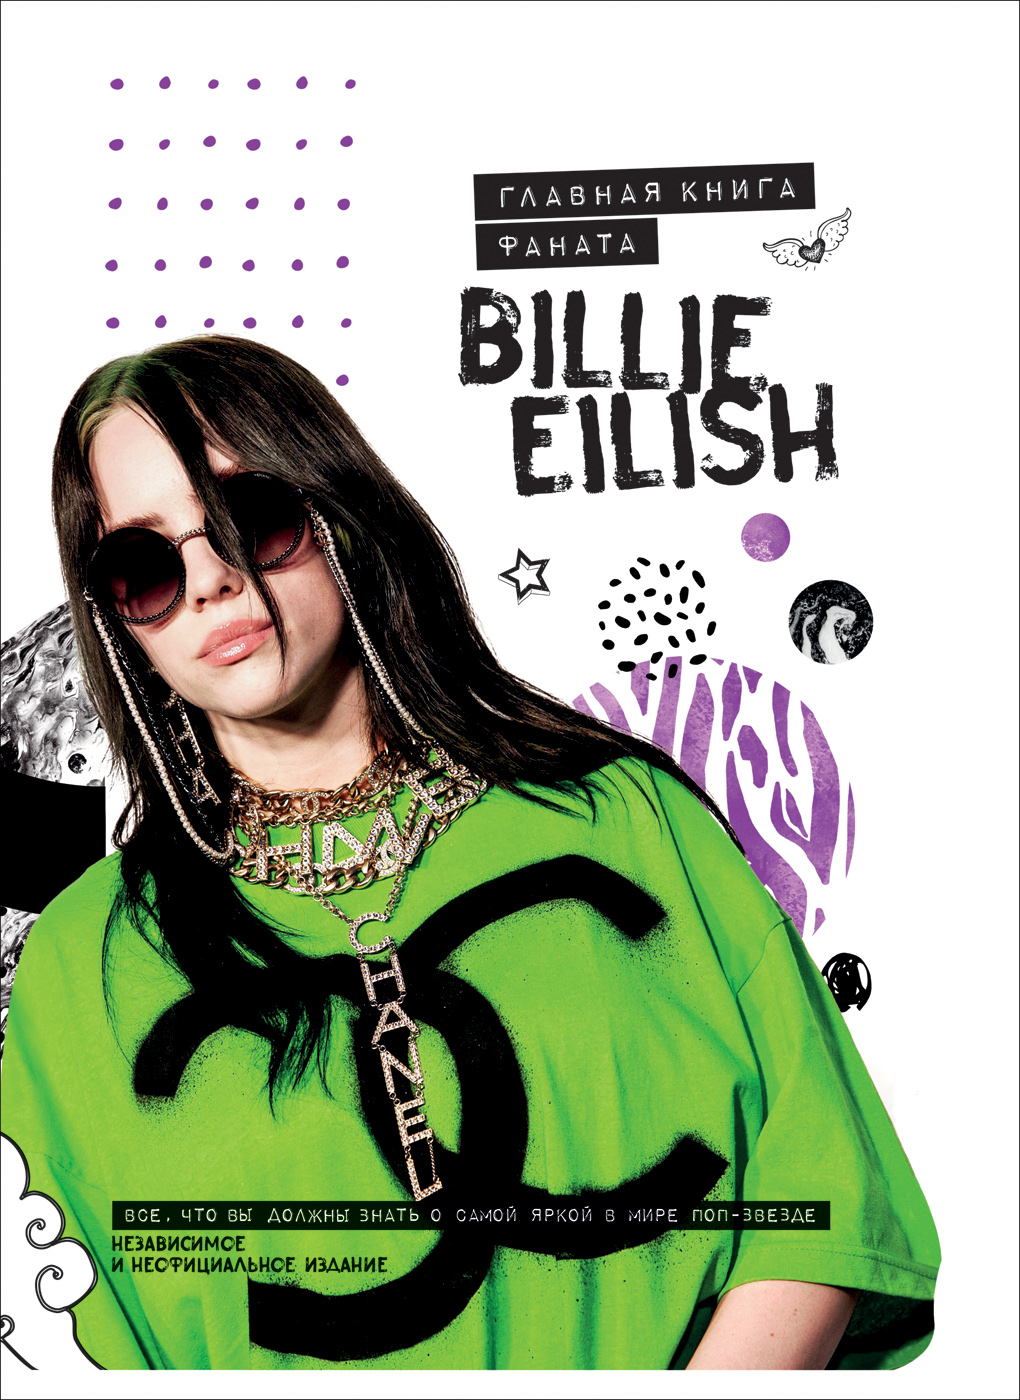 Kroft M. Billie Eilish. Glavnaja kniga fanata